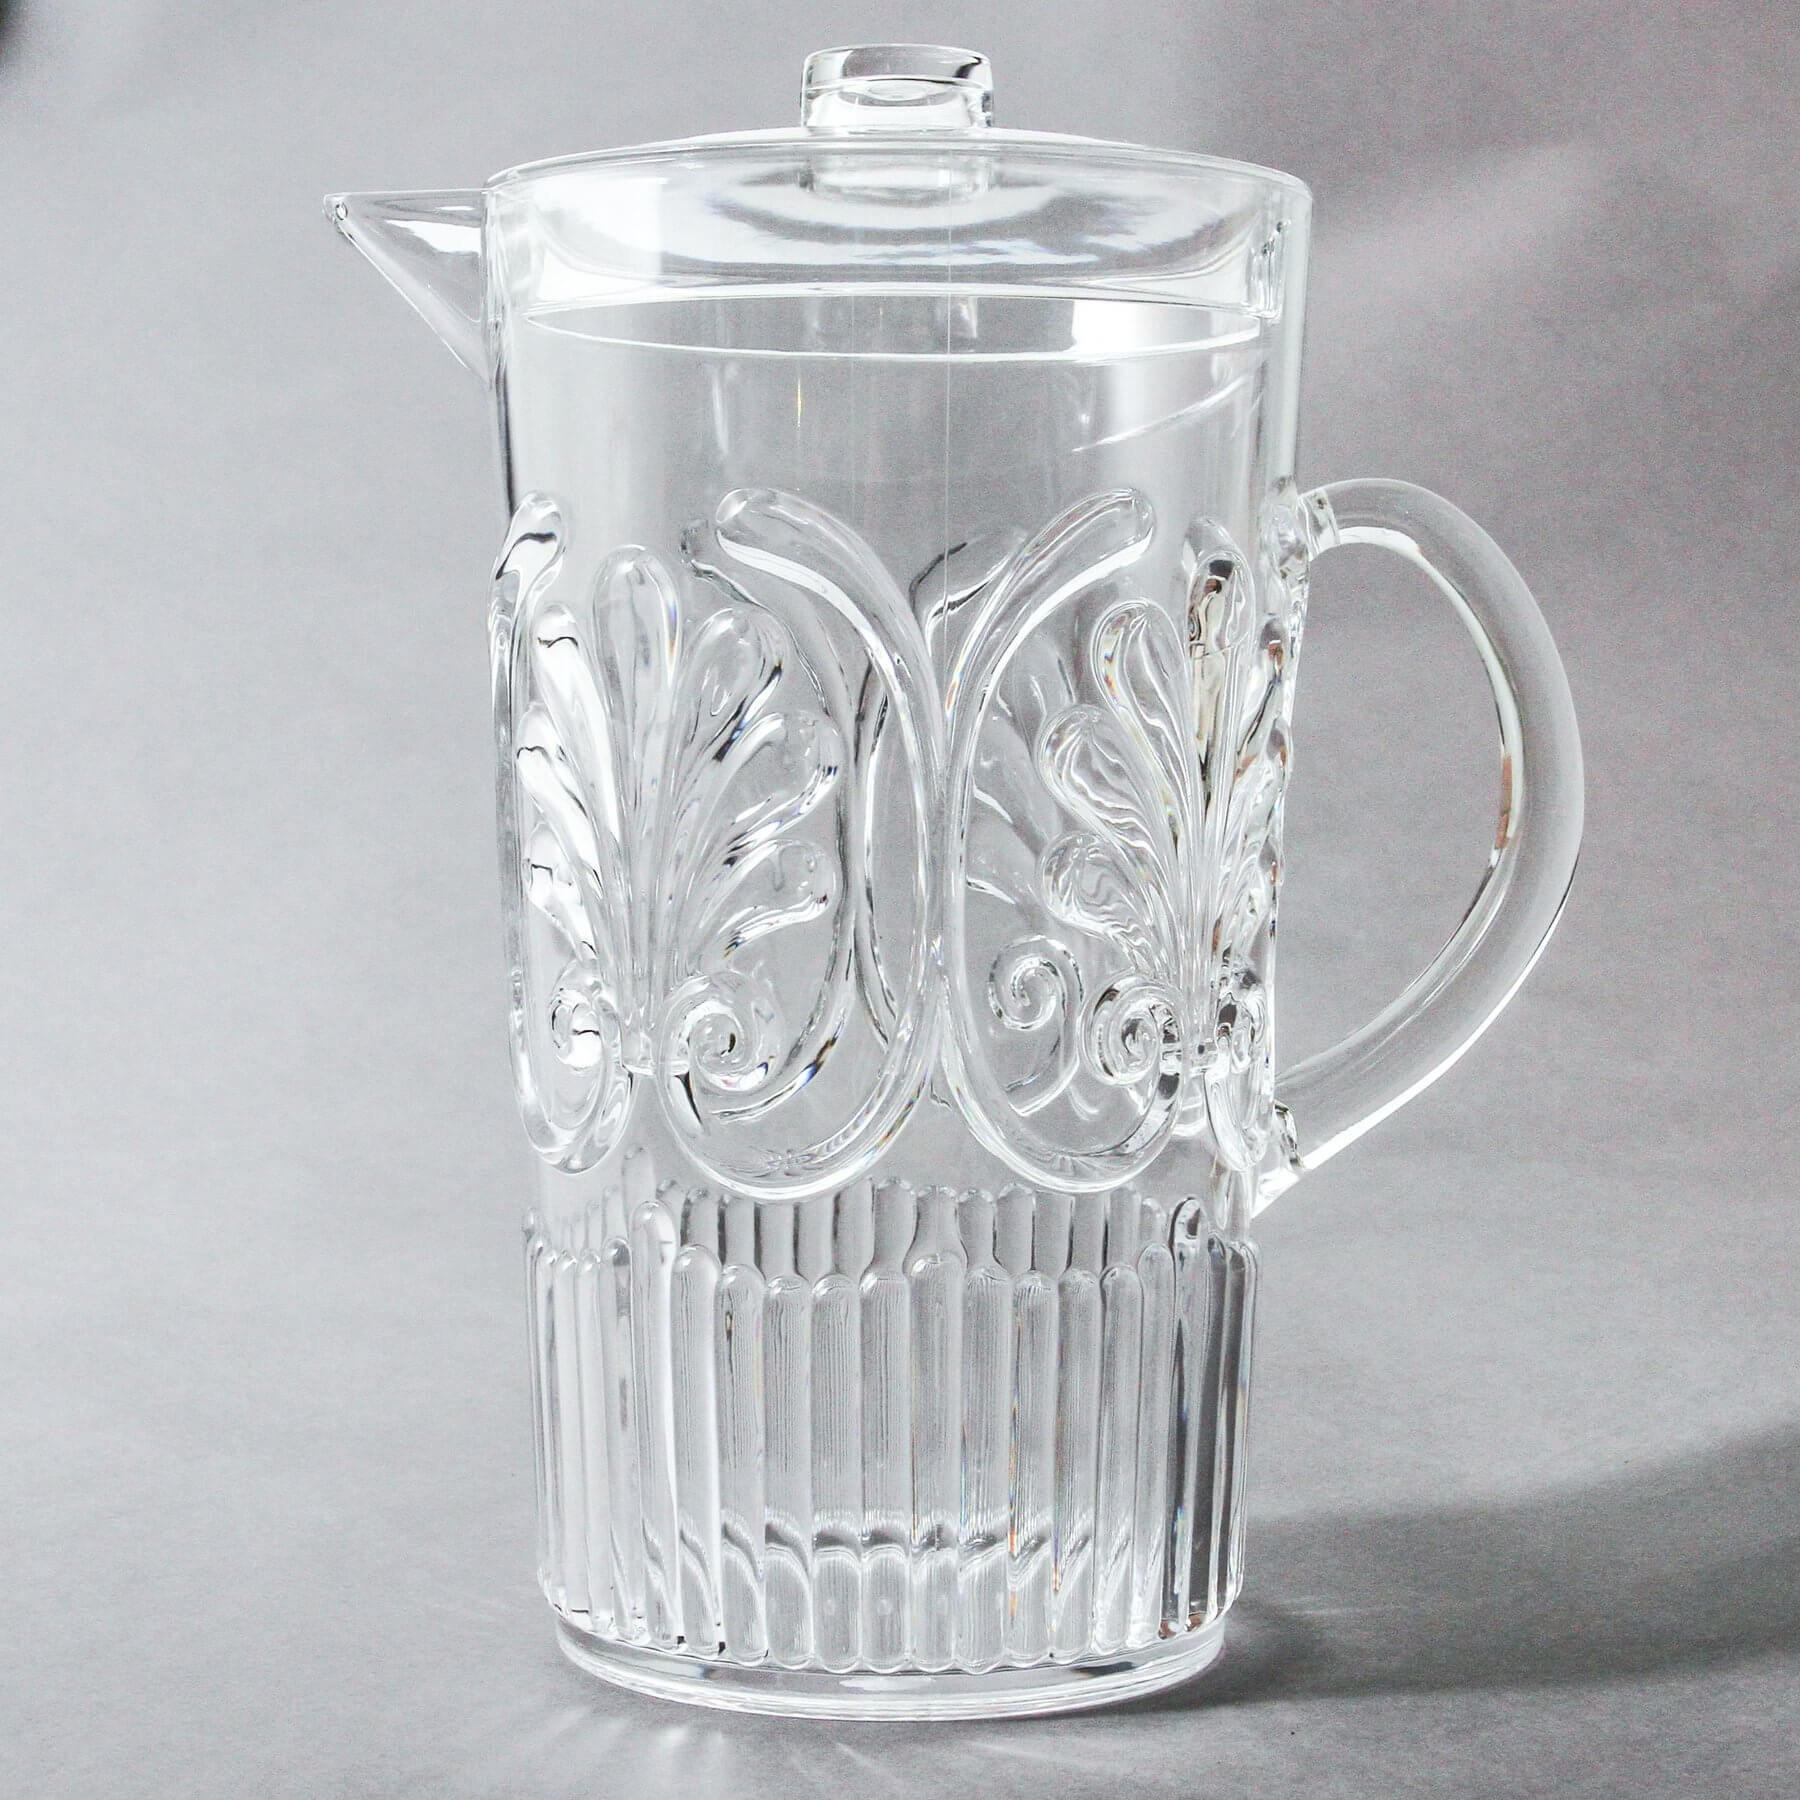 indigo love flemington acrylic jug clear | The Home Maven